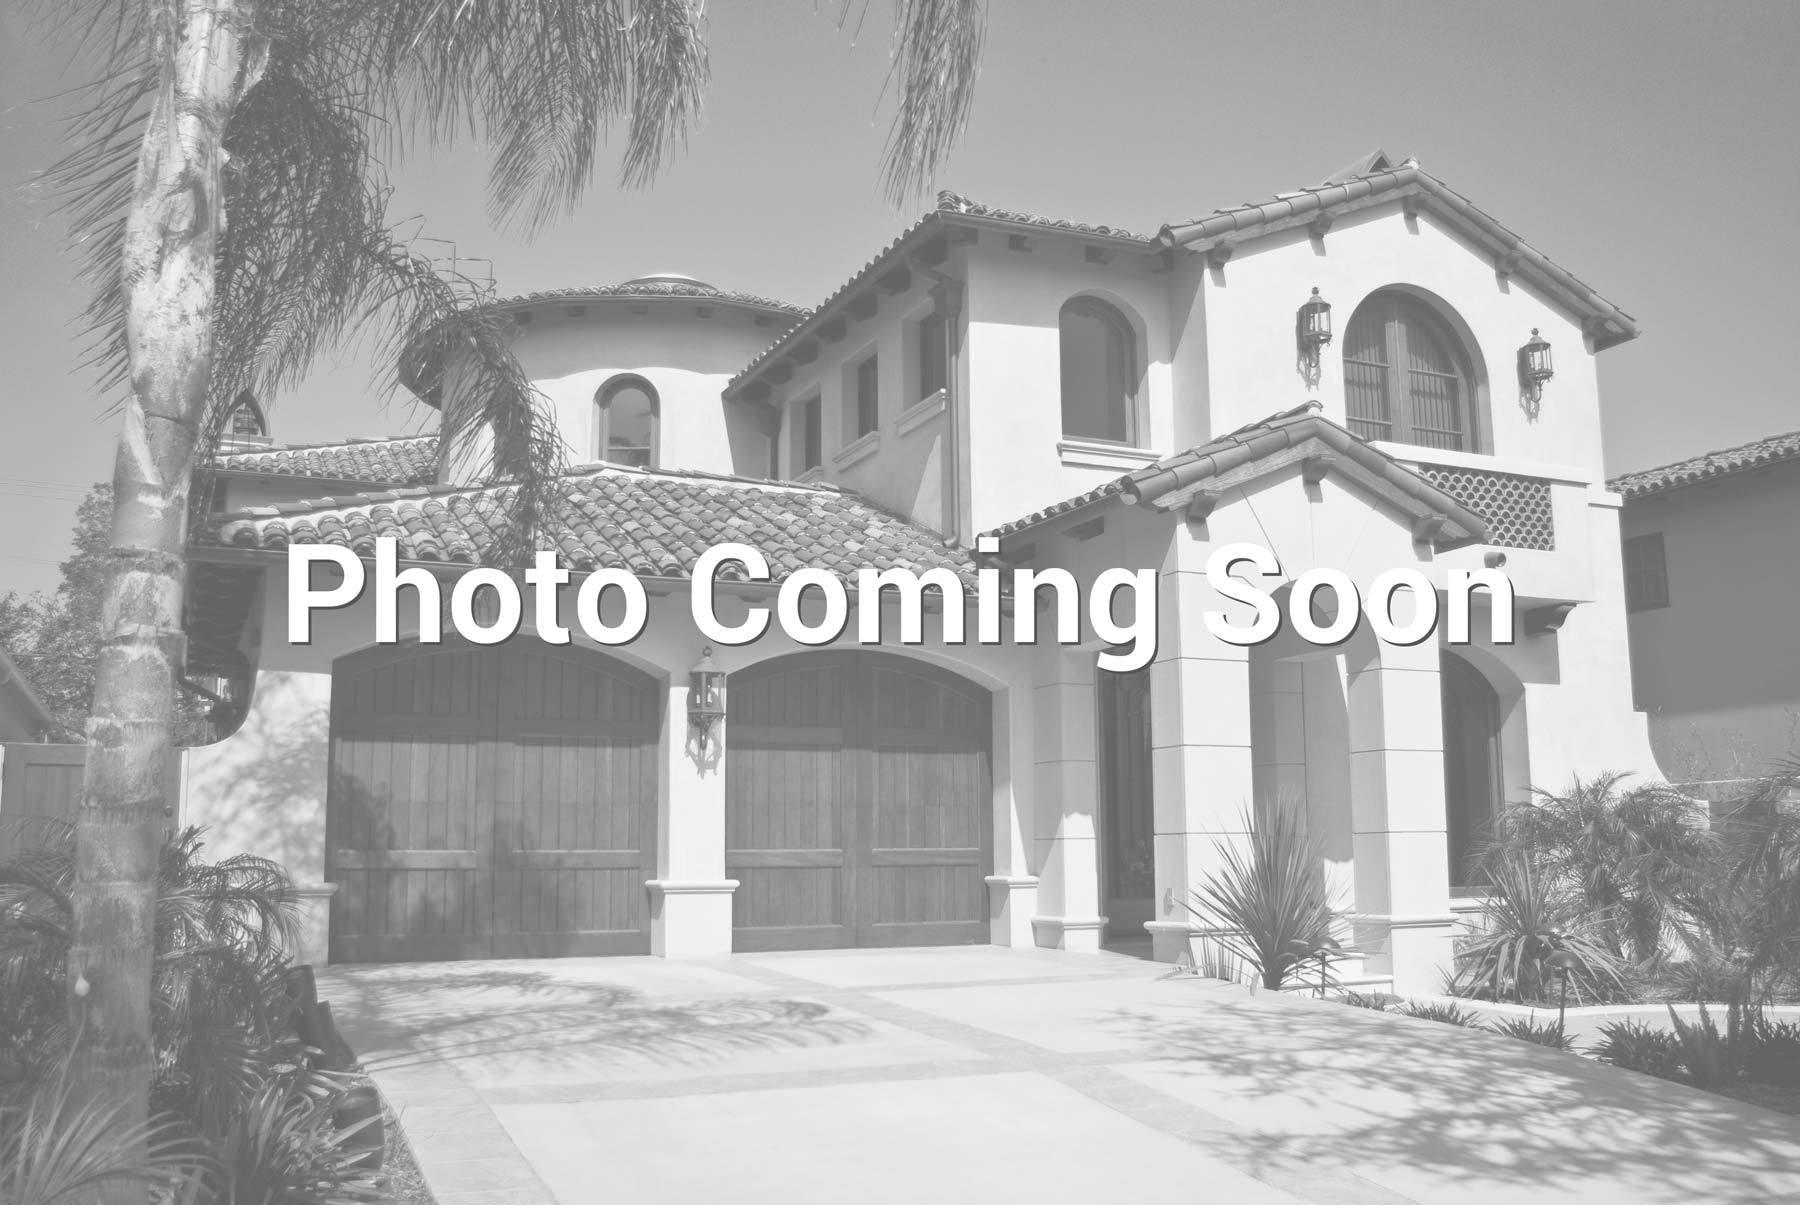 $1,075,000 - 4Br/3Ba - Home for Sale in Desert Ridge Lot 29, Phoenix